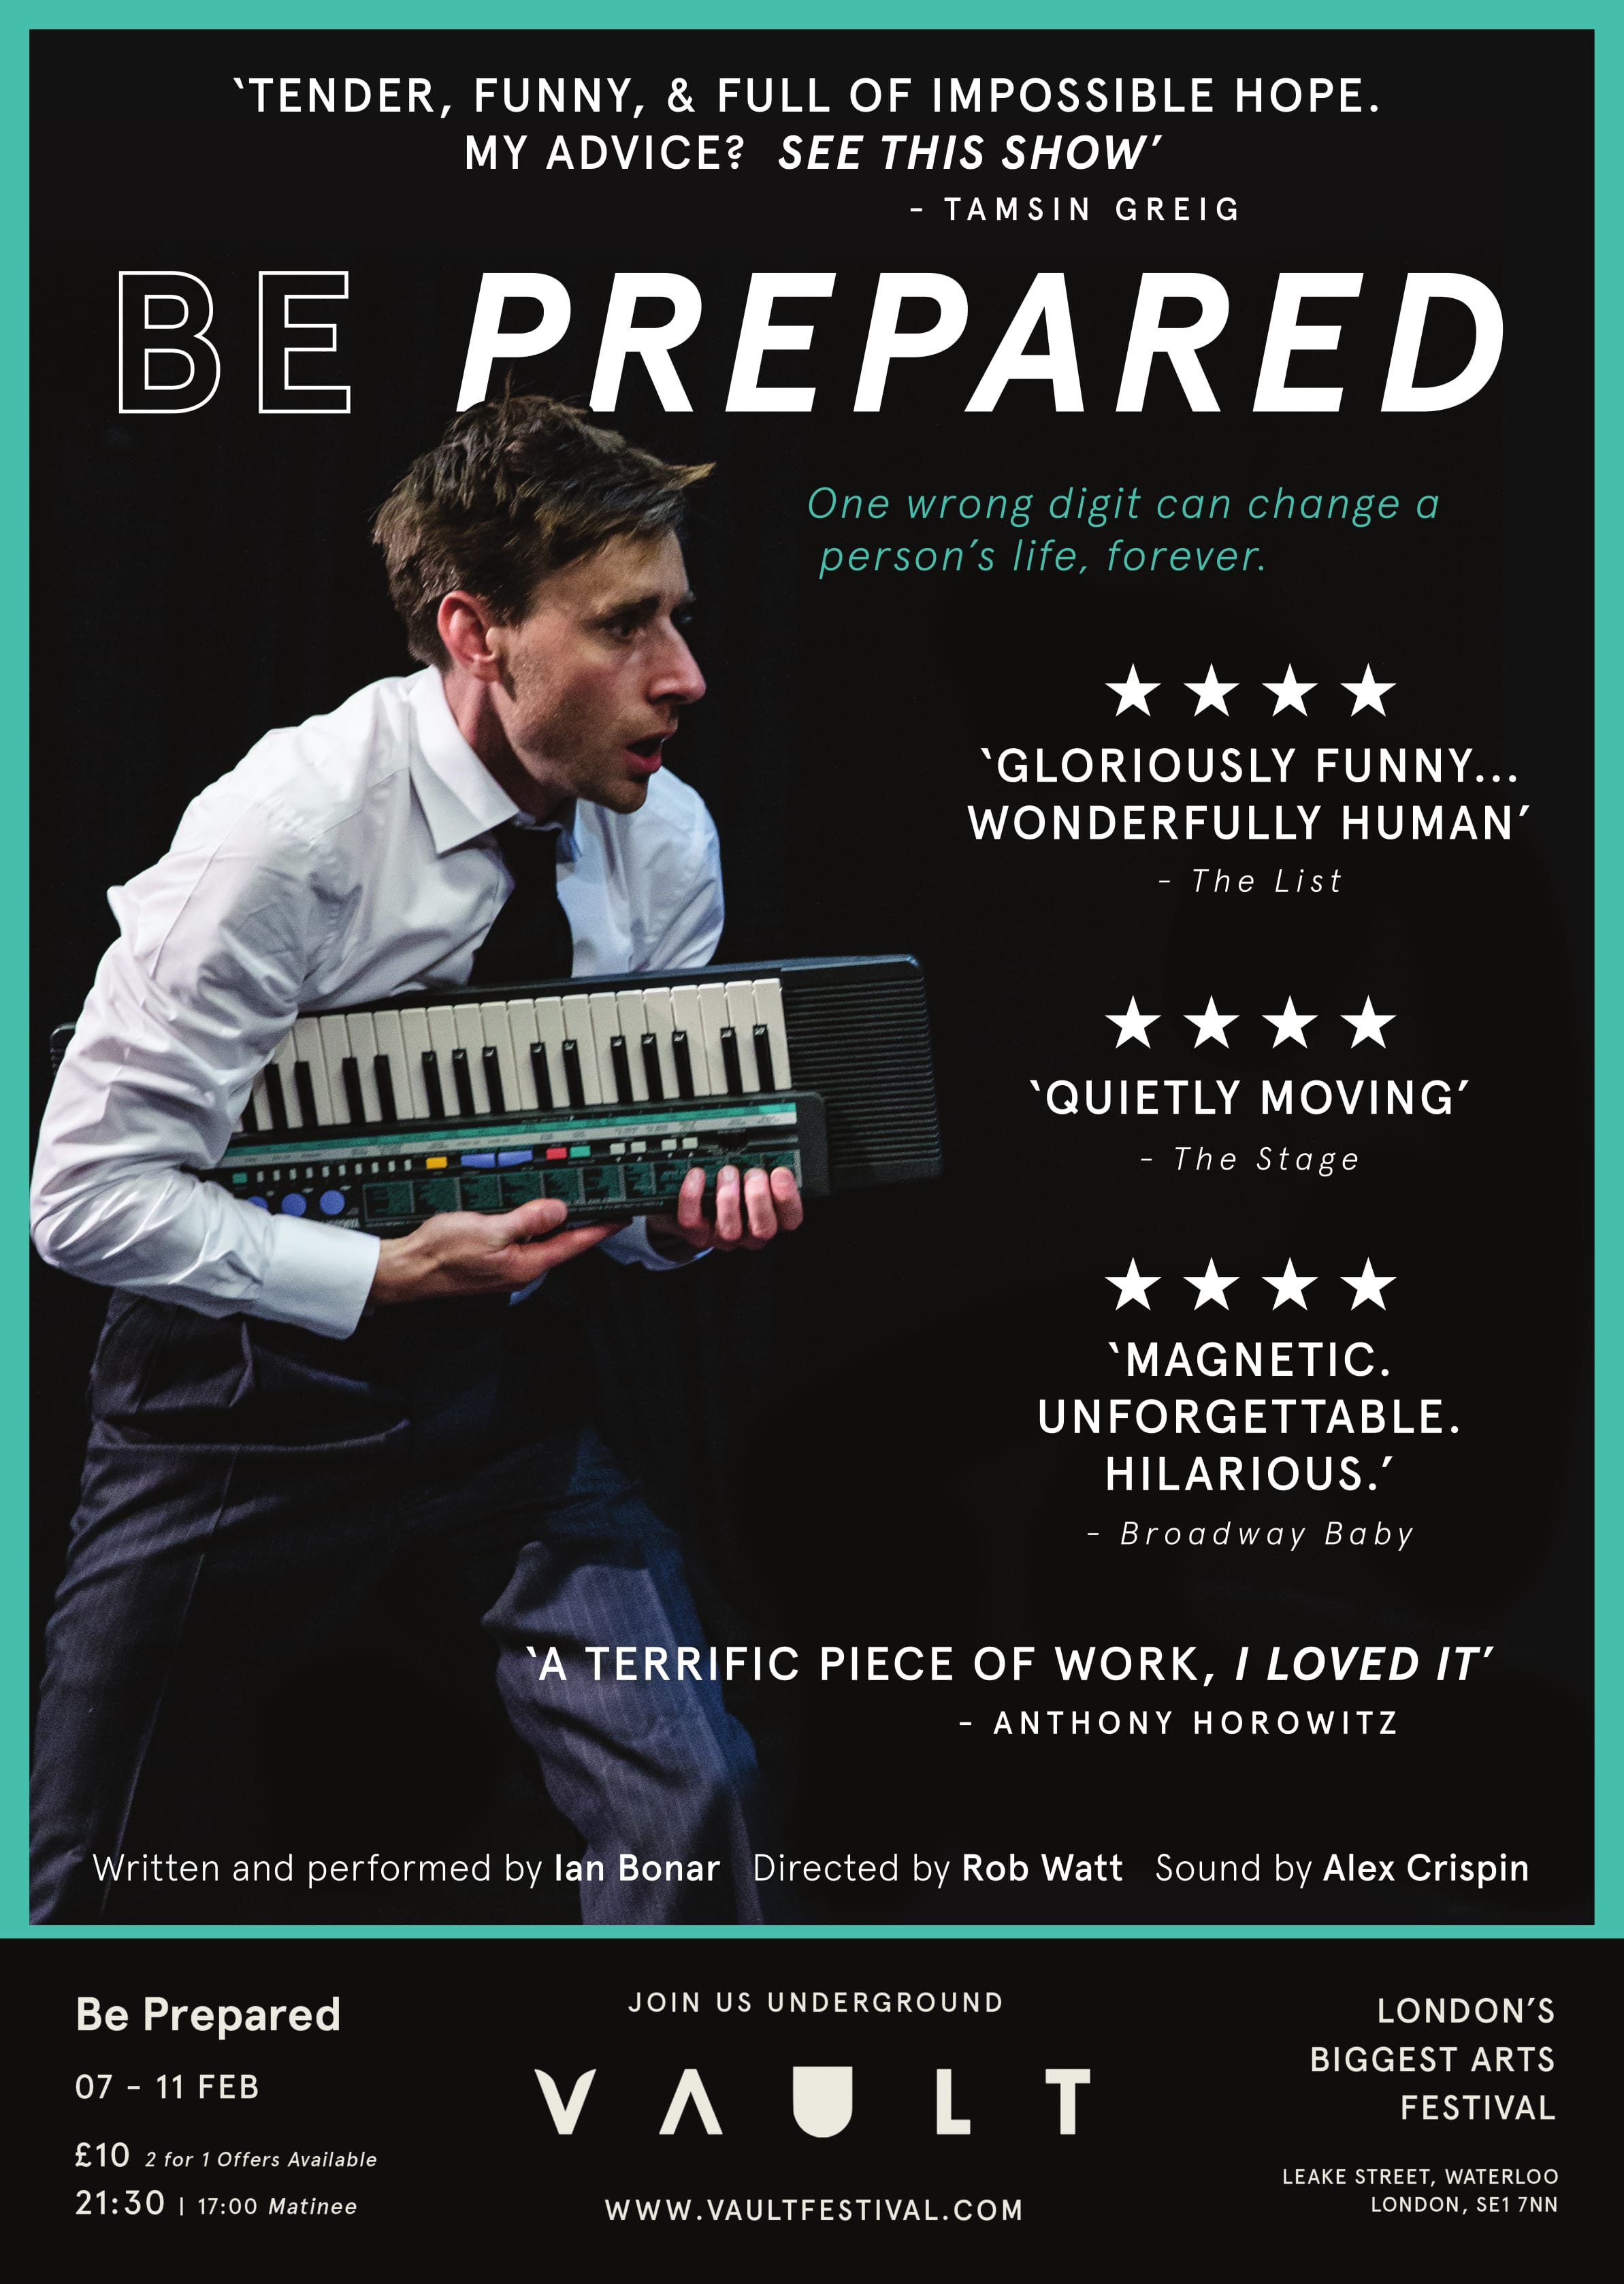 Be Prepared - Poster Image.jpg